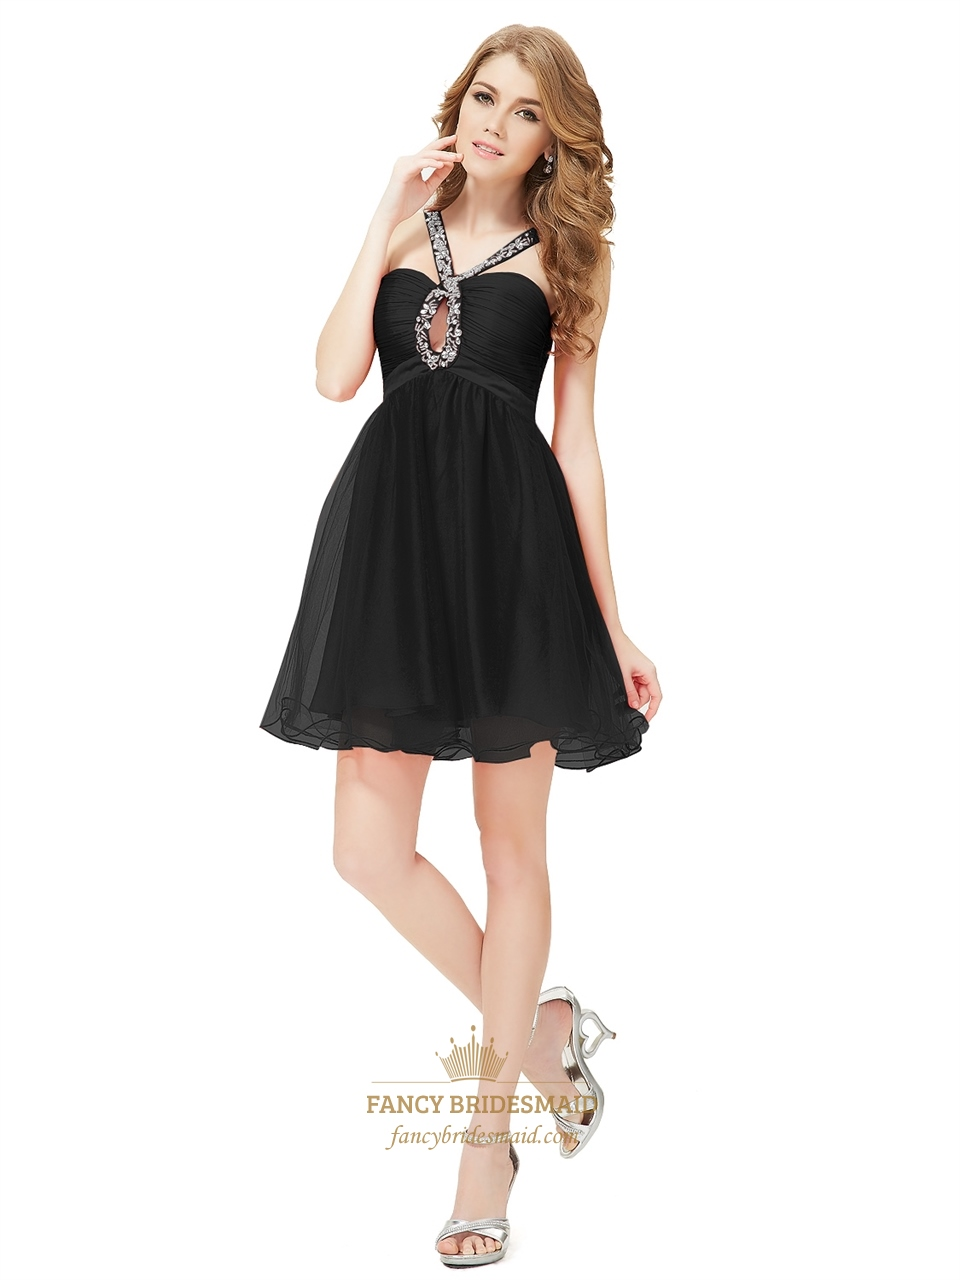 A skater dress silhouette has faux wrap appeal that hugs your curves in all the right ways.